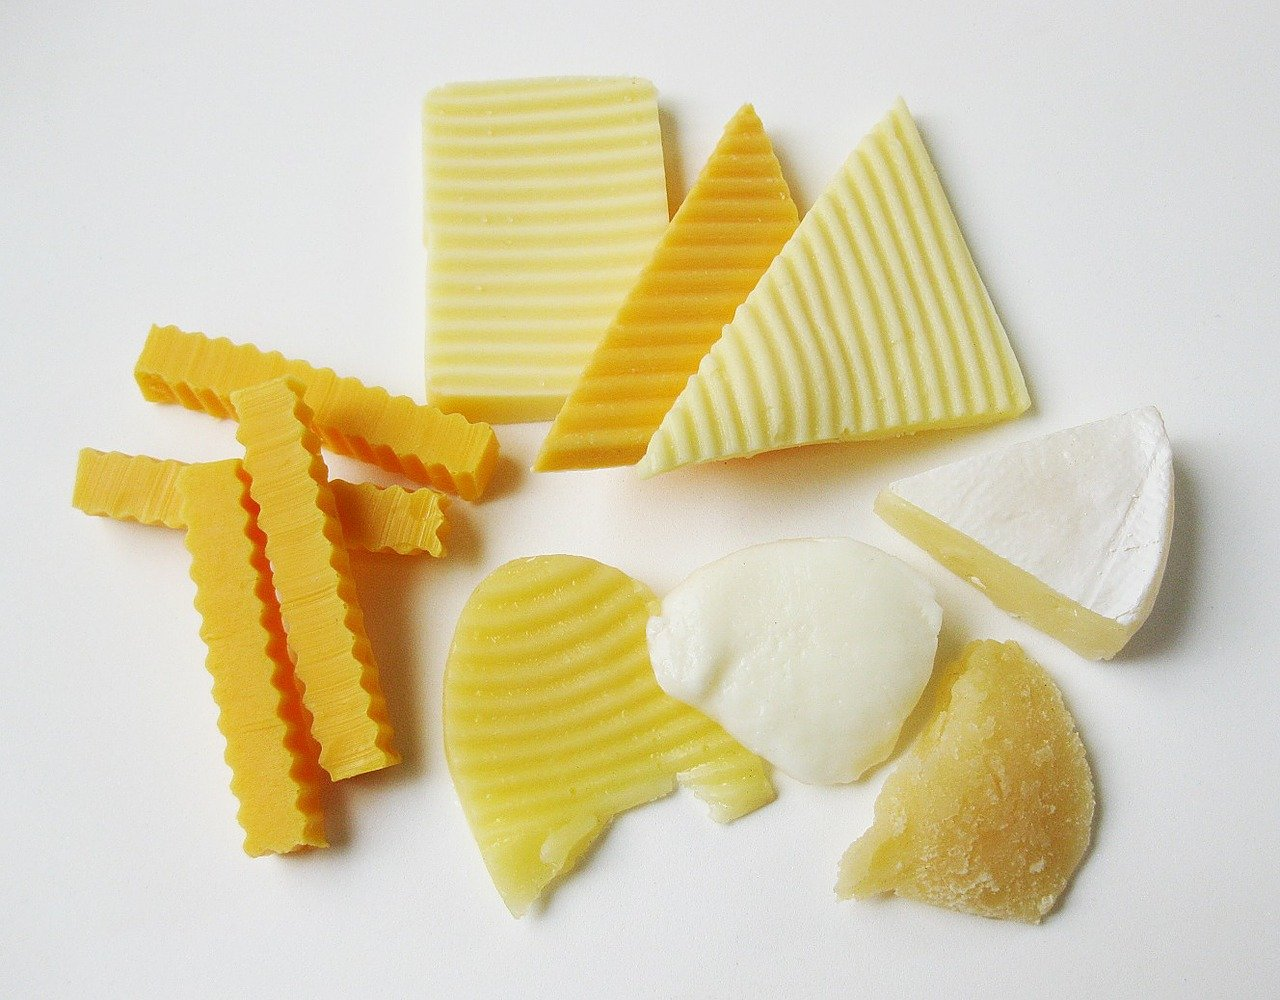 processed foods and dairy products